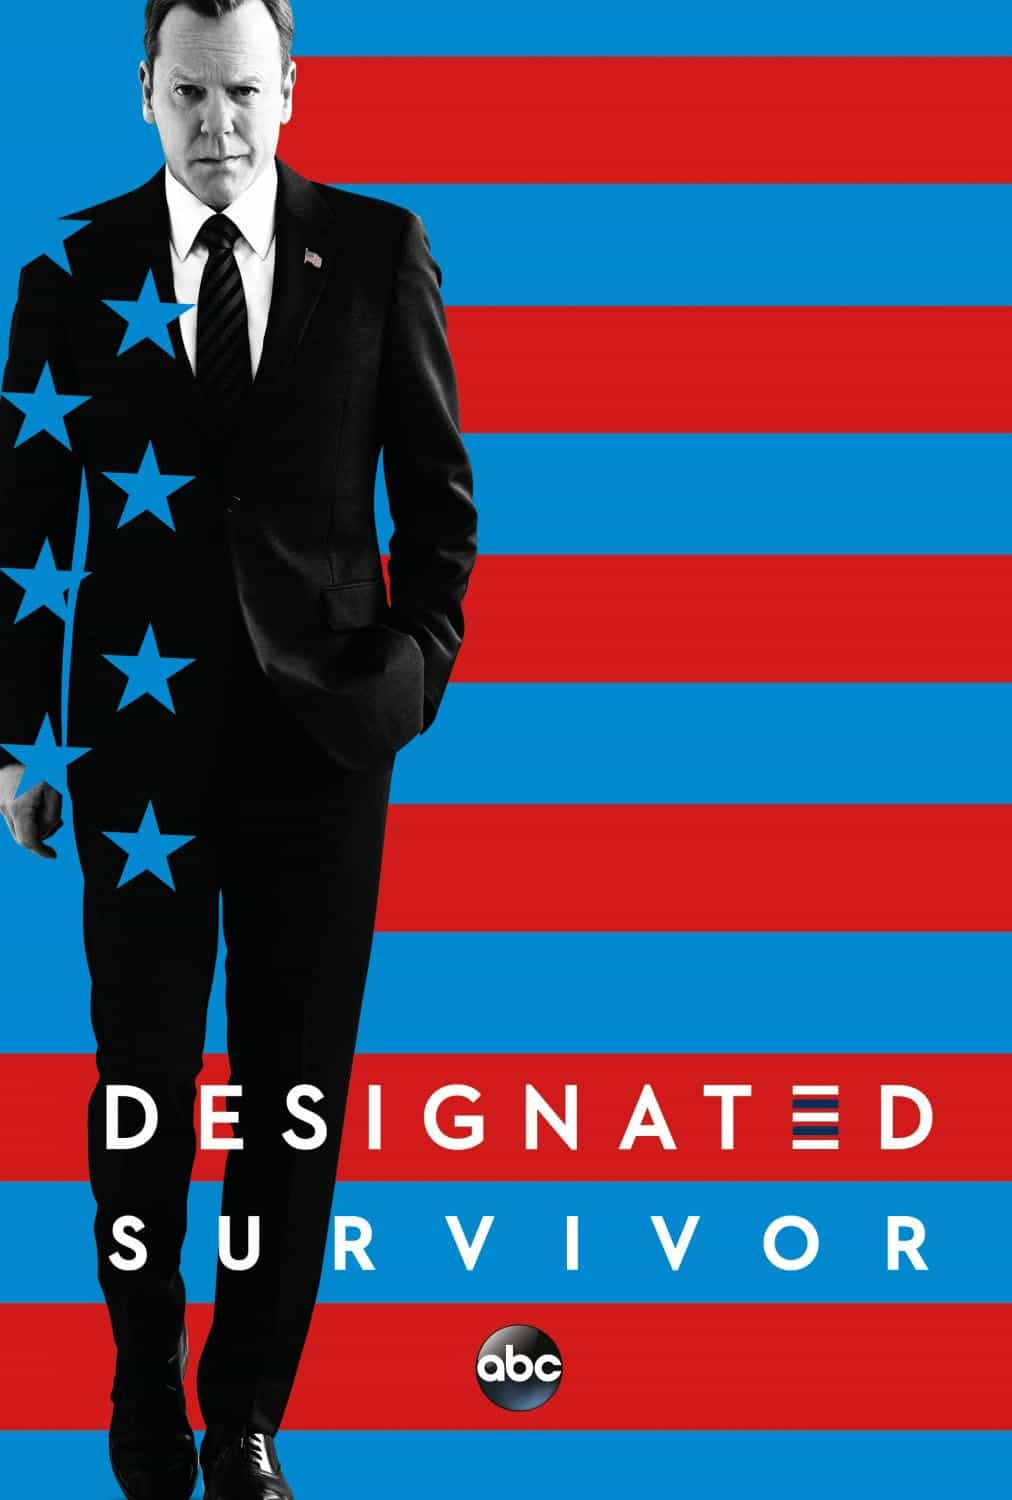 Designated-Survivor-Season-2-Poster